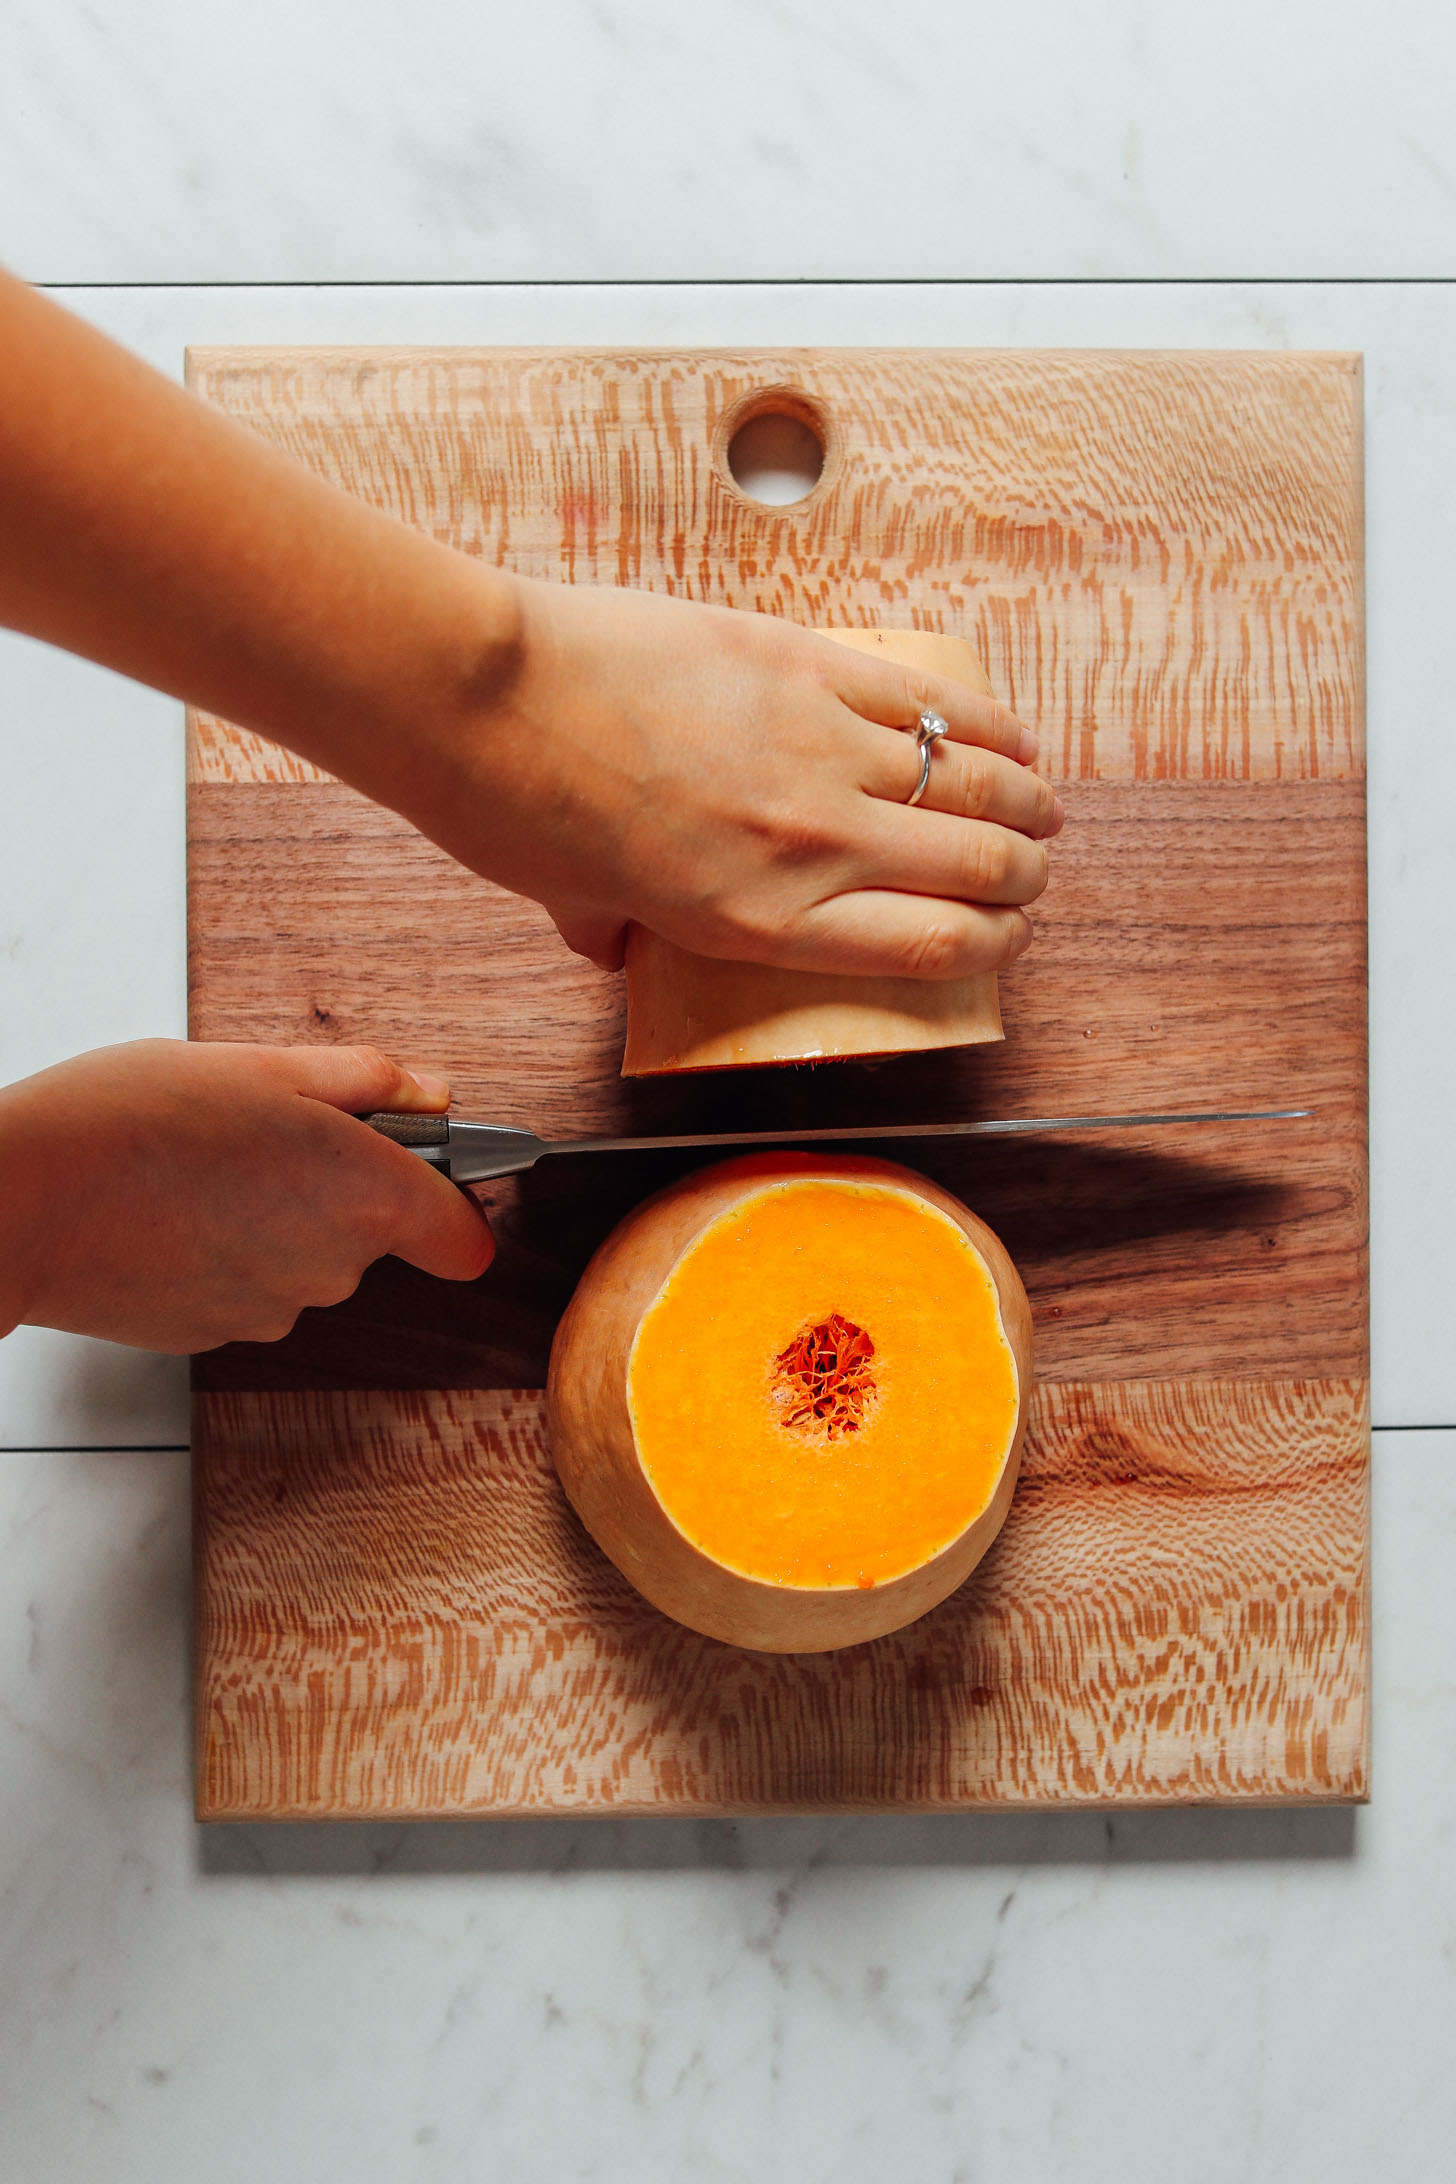 Butternut squash cut in half with the knife held between the two halves